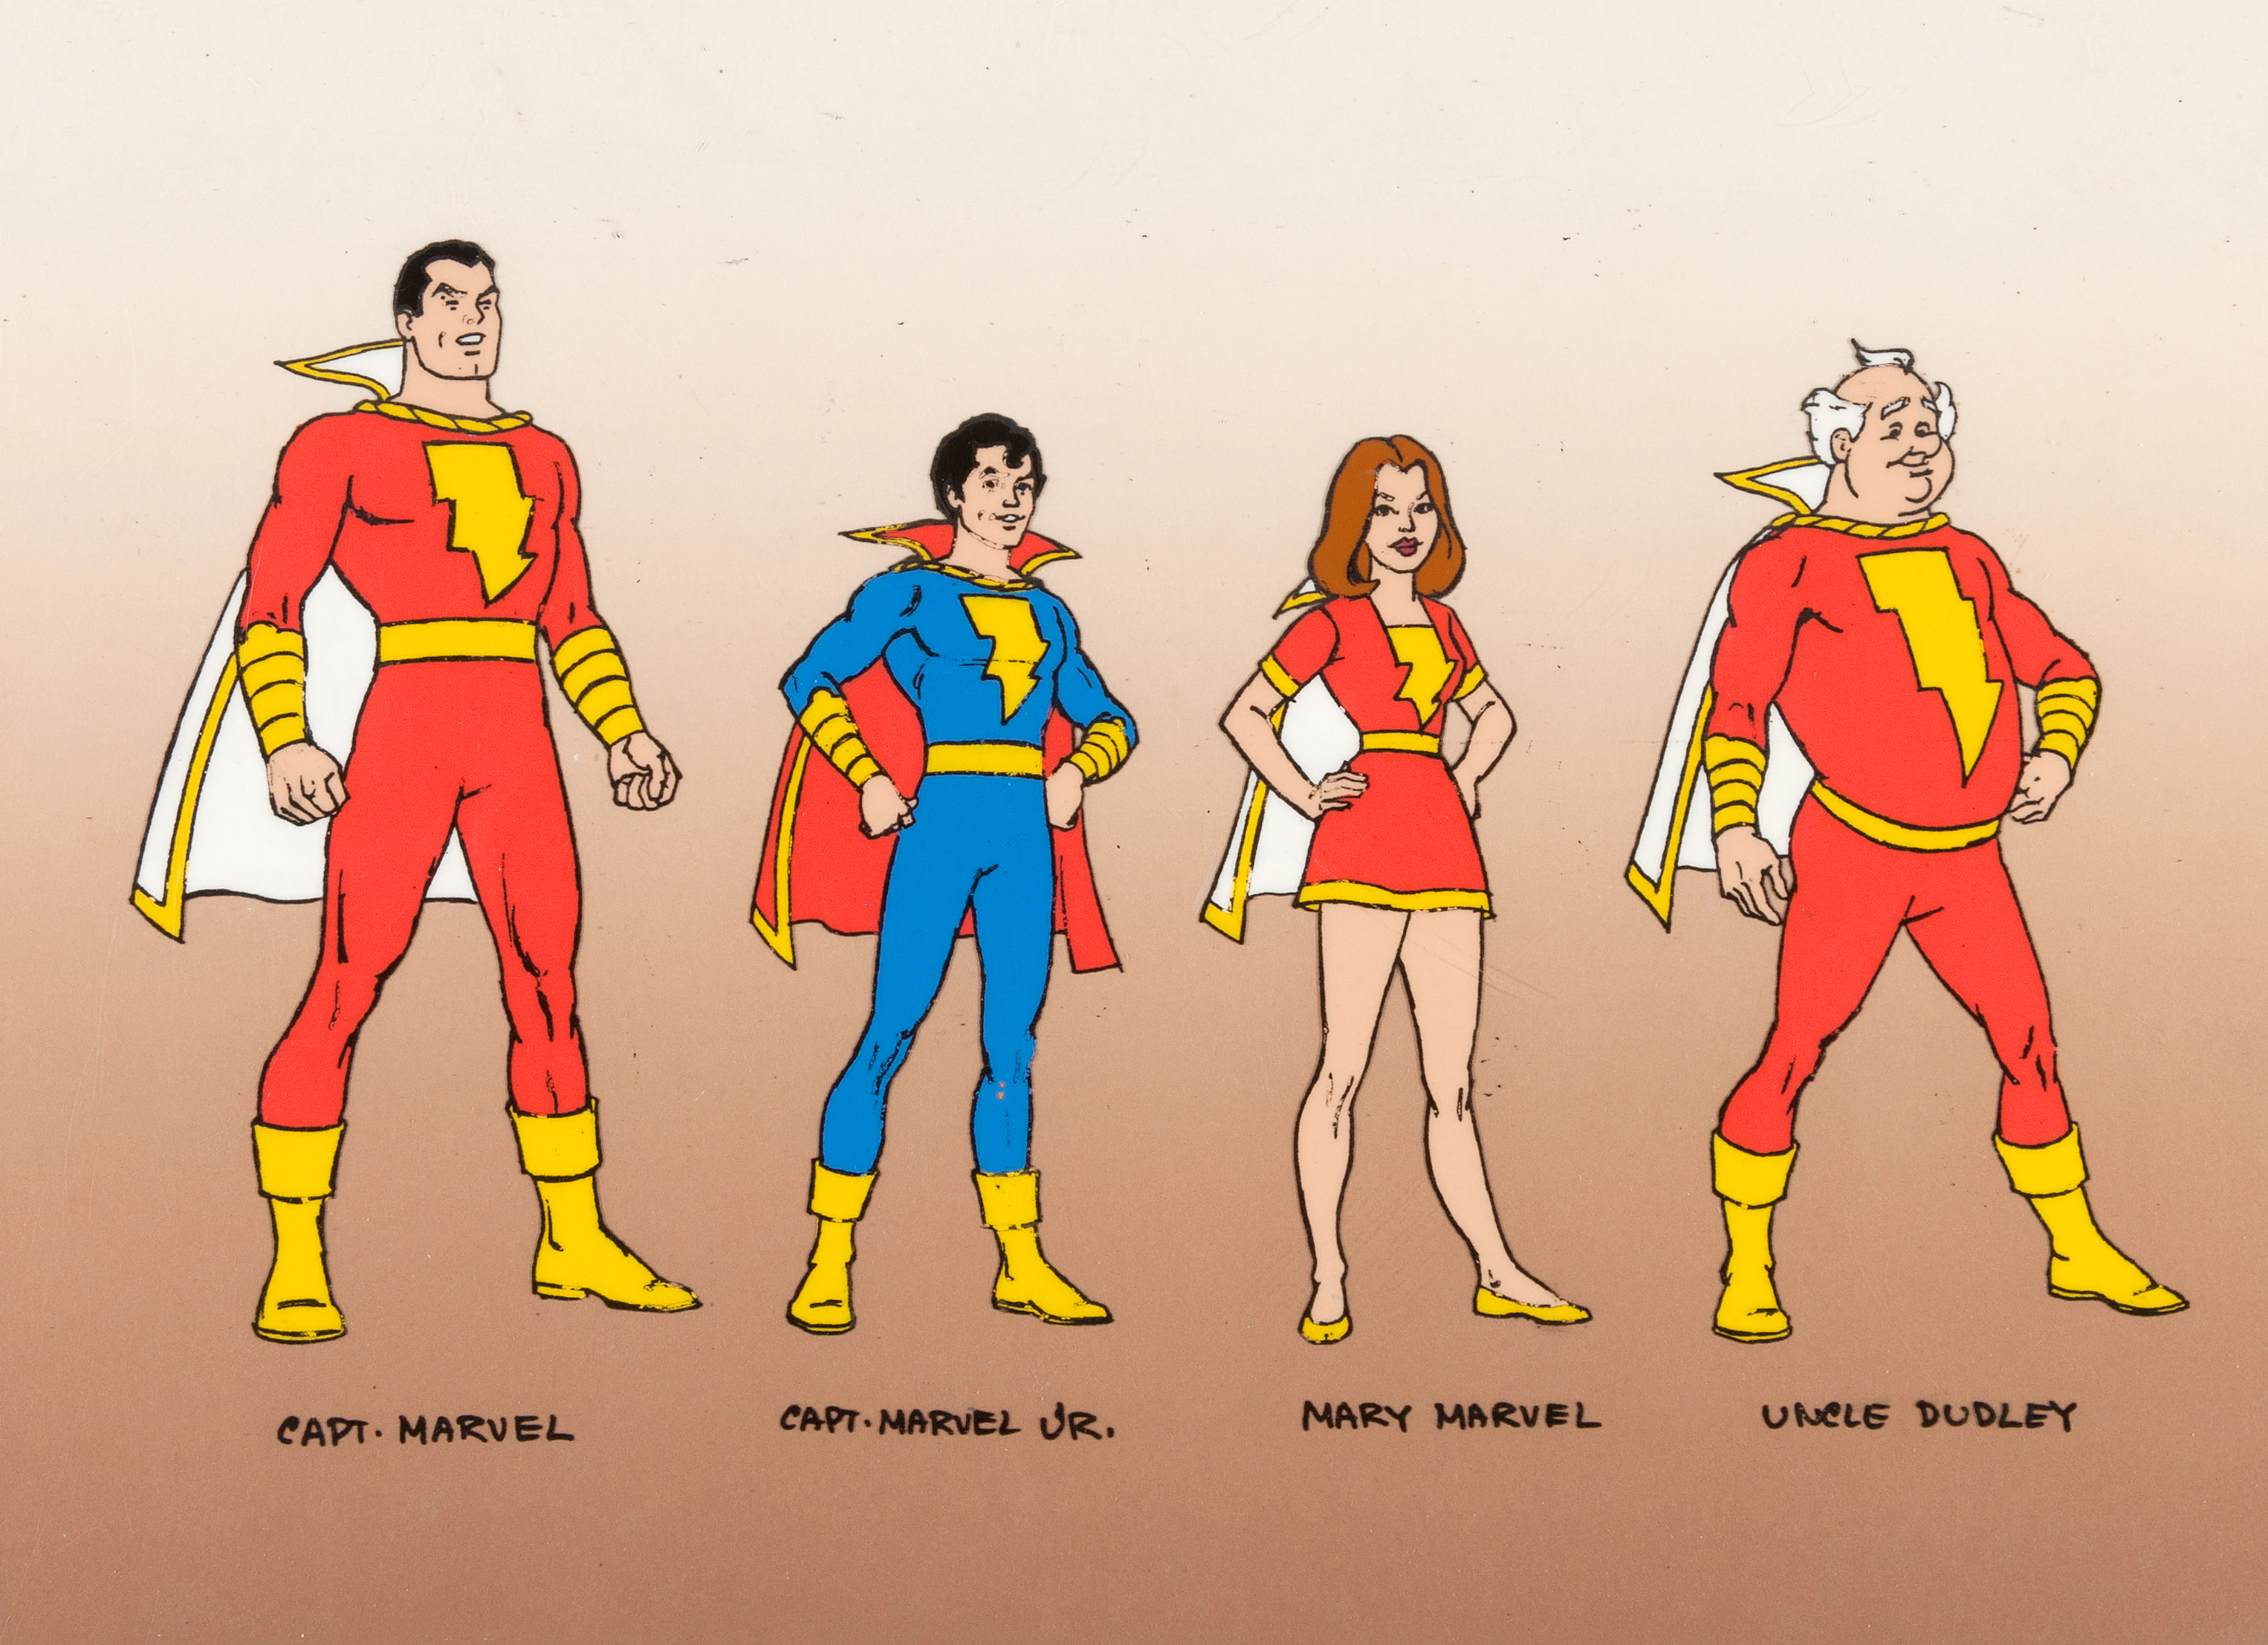 shazam! 13 things to love about the original captain marvel | 13th